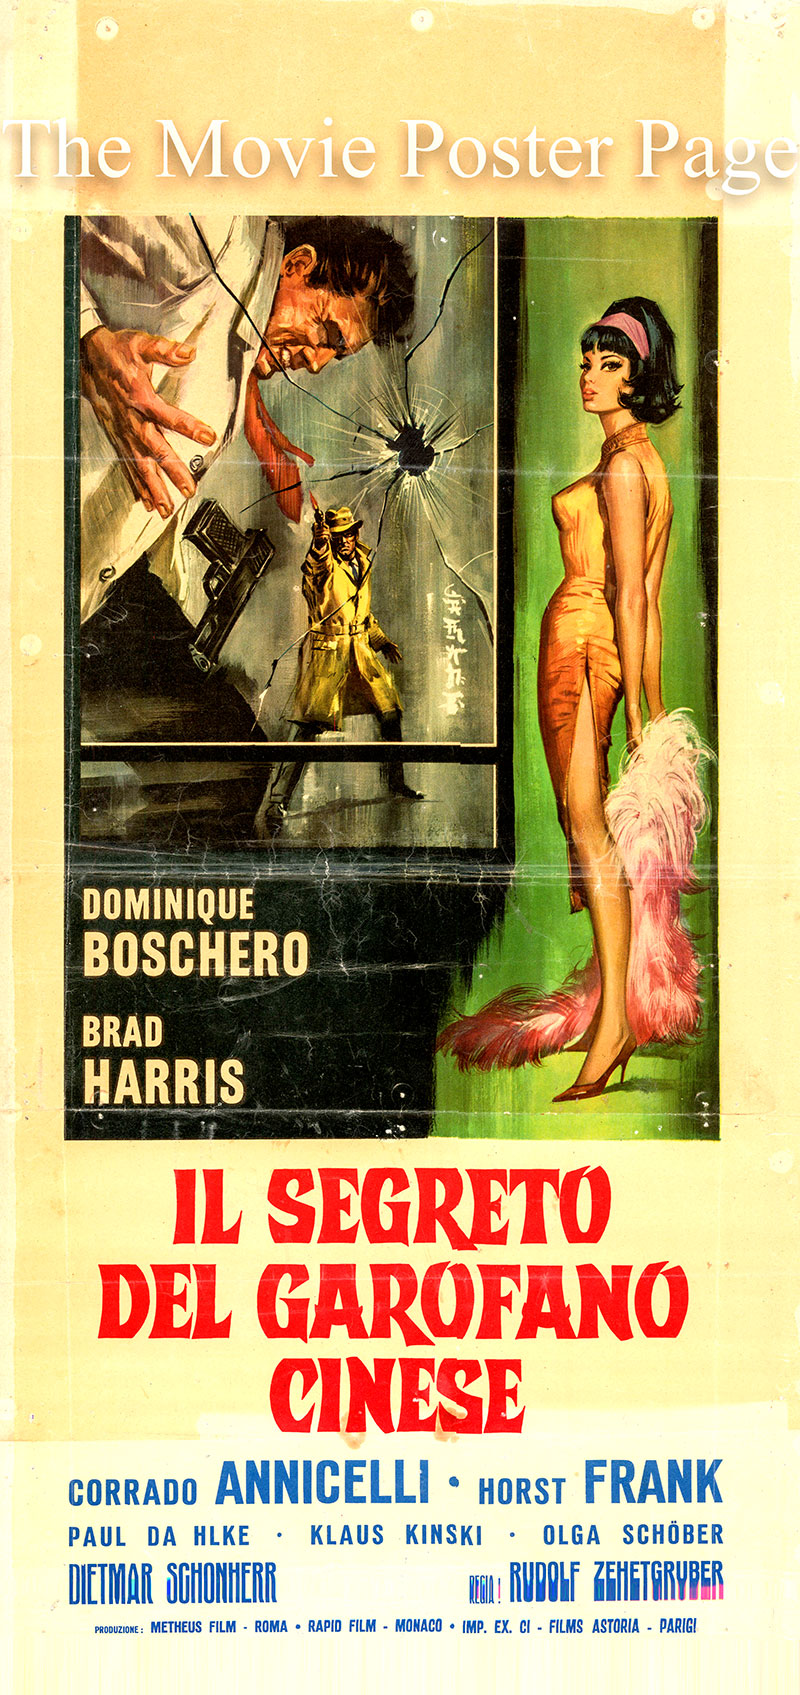 Pictured is an Italian locandina promotional poster for the 1964 Rudolf Zehetgruber film The Secret of the Chinese Carnation starring Brad Harris as Donald Ramsey.